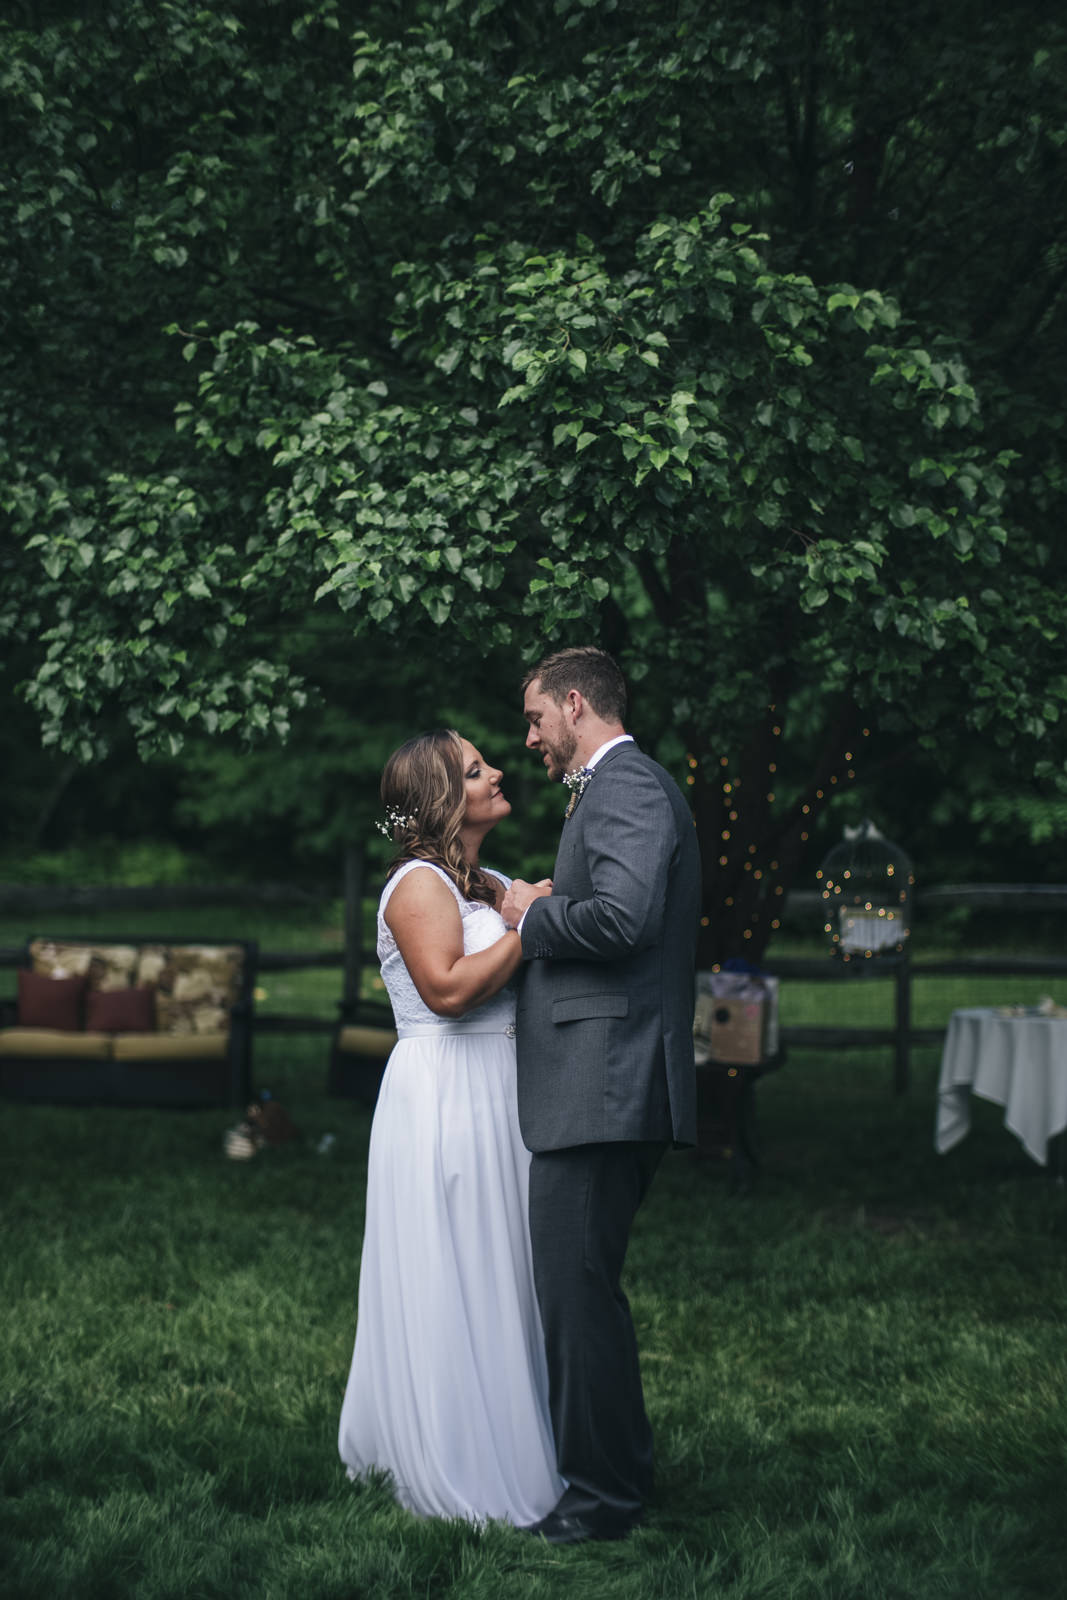 Bride and groom's first dance at backyard wedding reception.